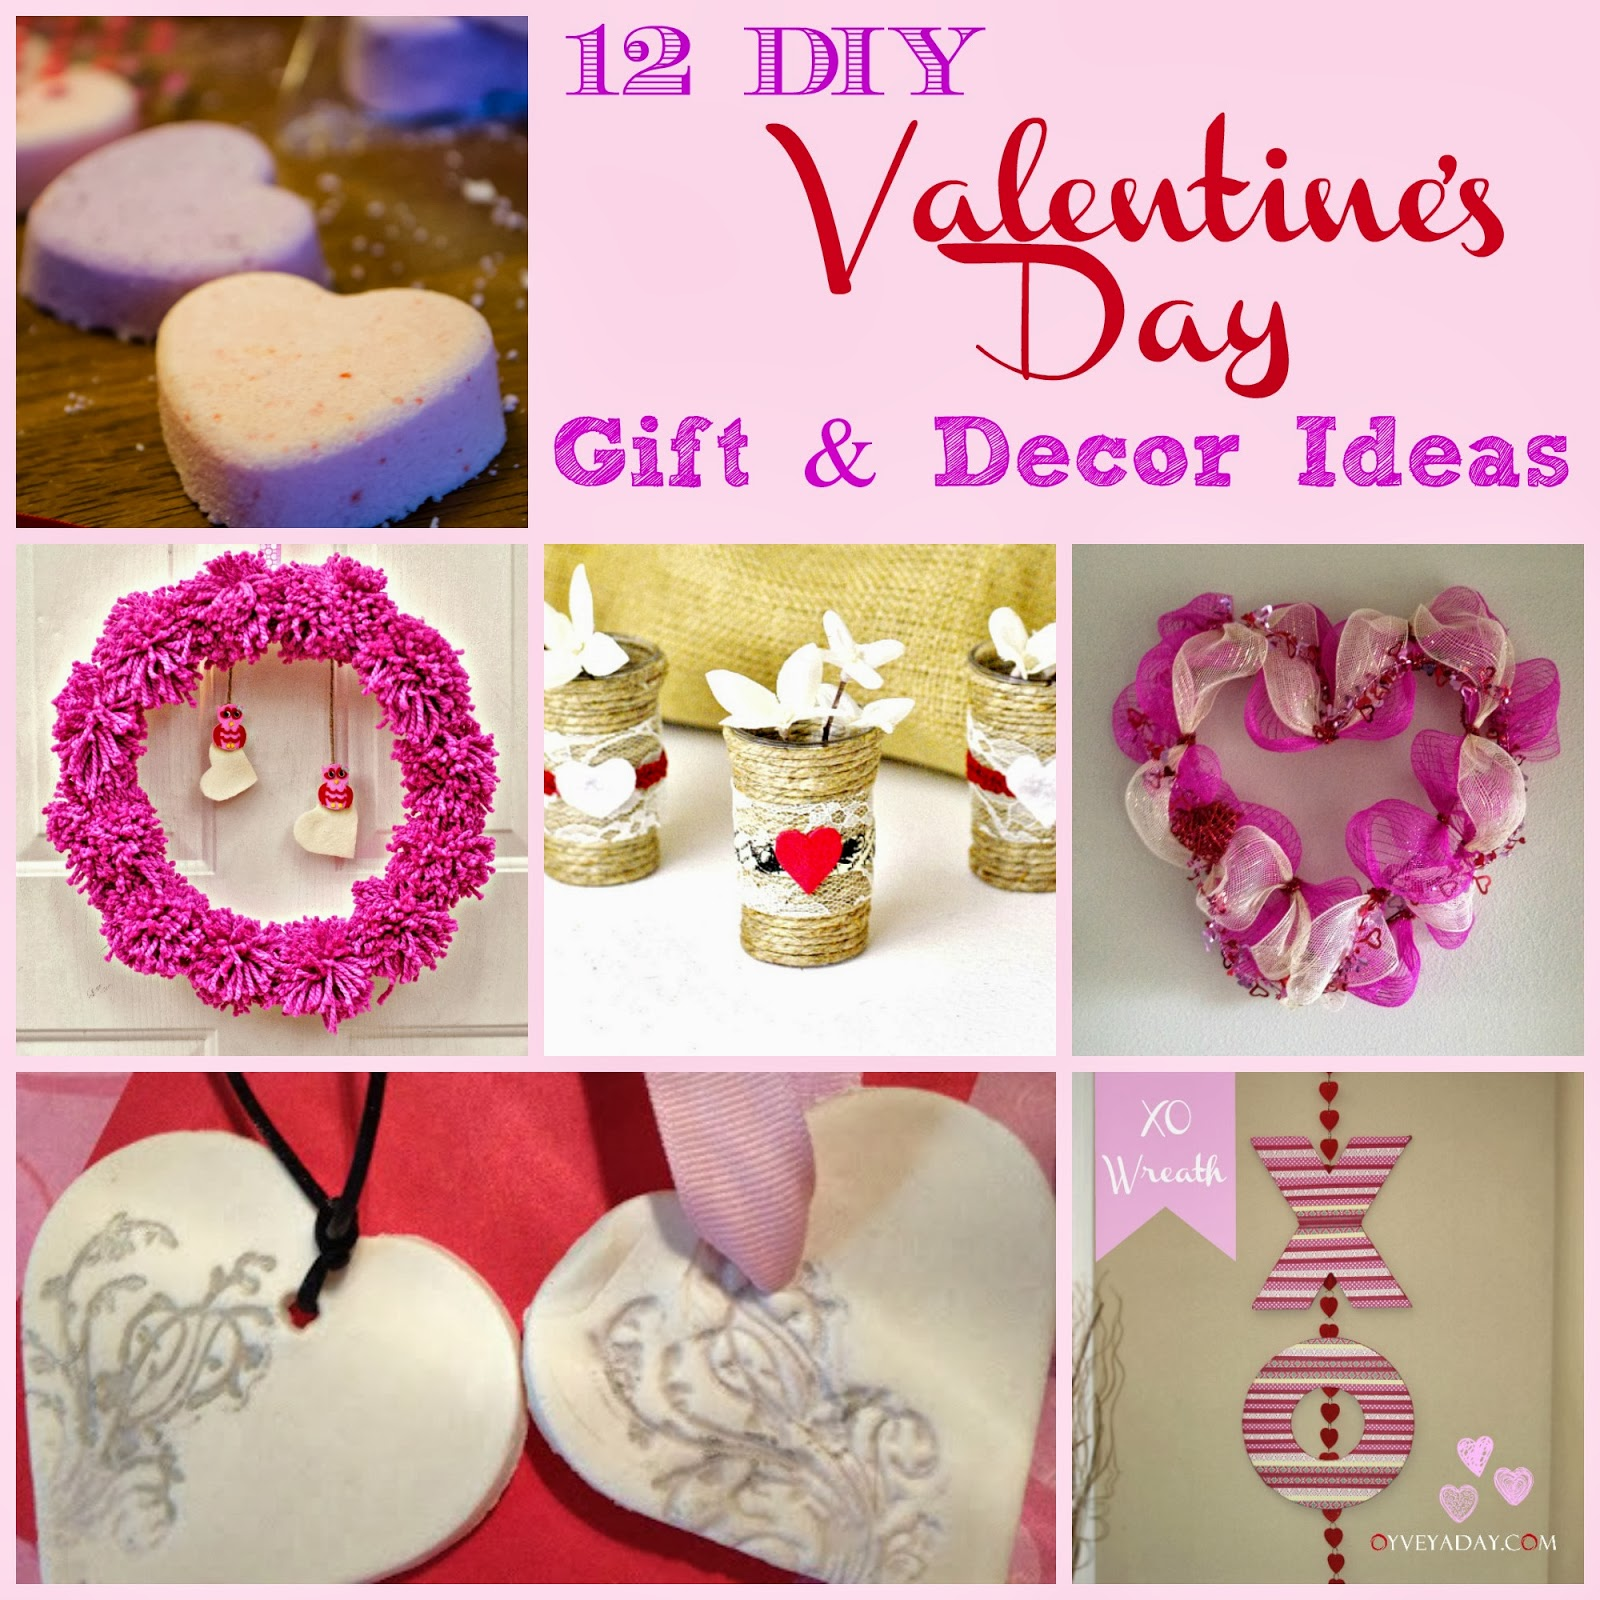 12 Diy Valentine S Day Gift Decor Ideas Outnumbered 3 To 1